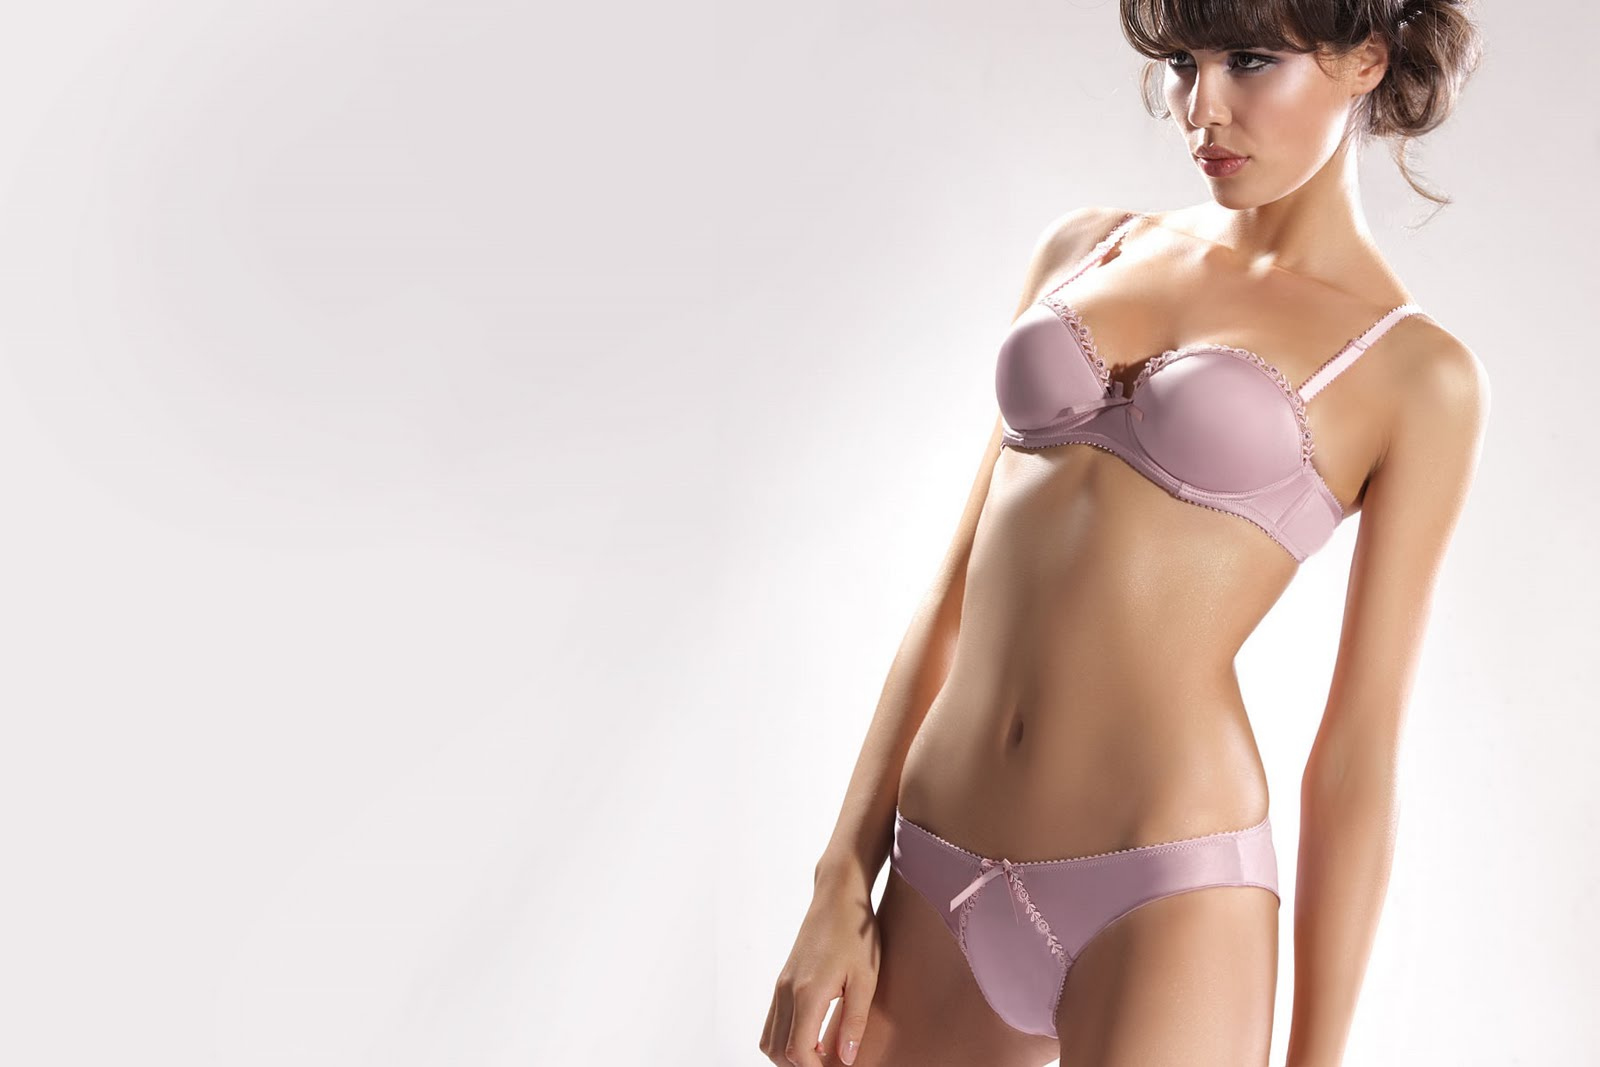 Bra pictures hd